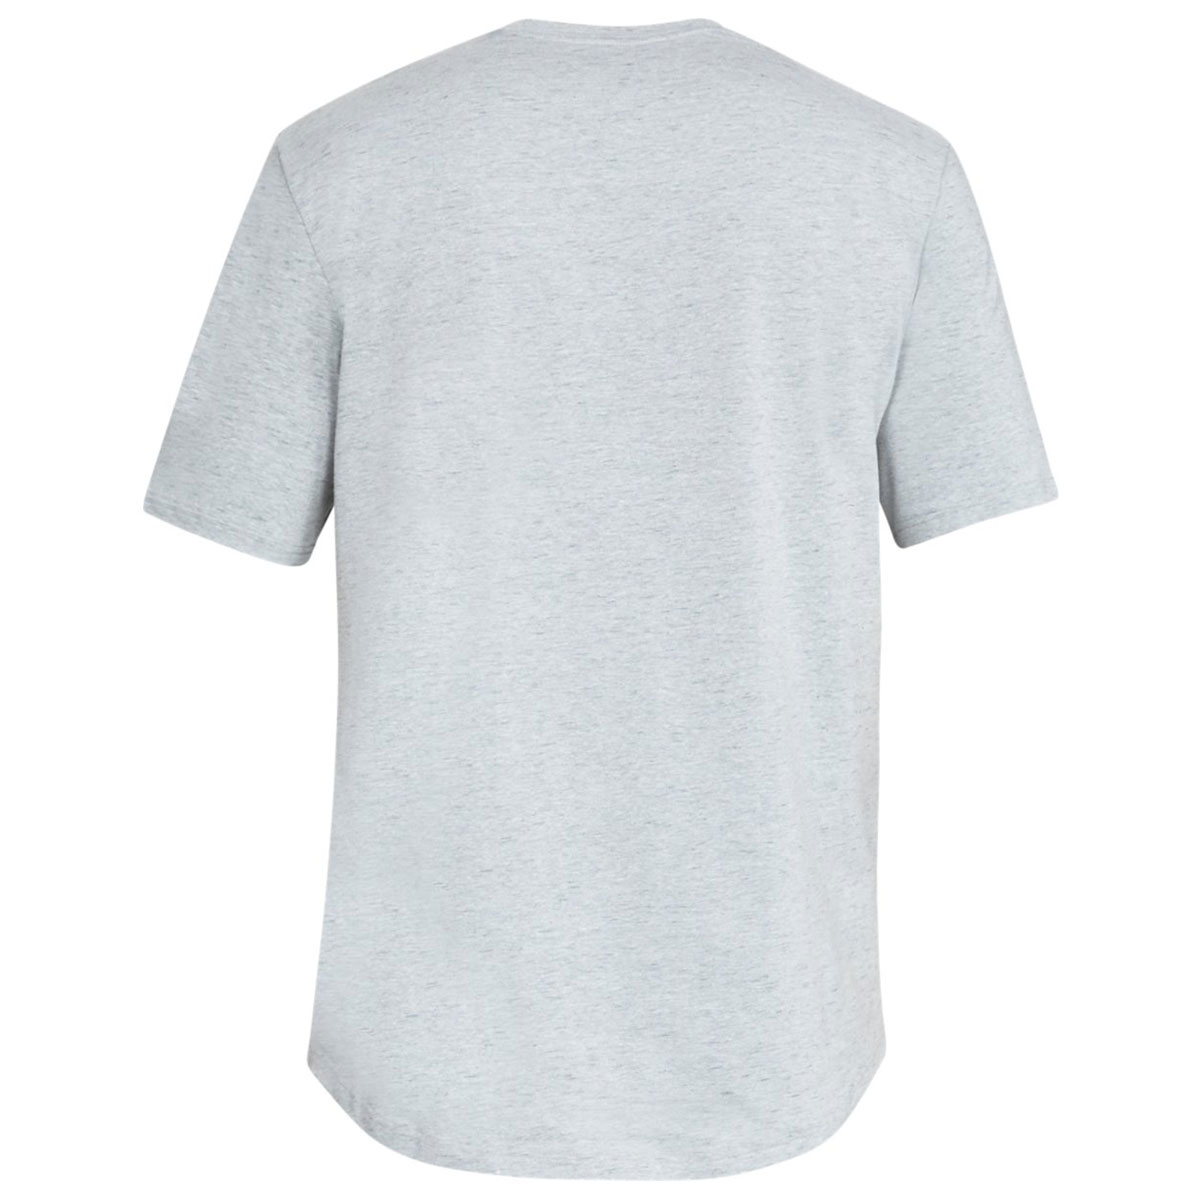 Under-Armour-Mens-UA-Sportstyle-SS-Moisture-Wicking-T-Shirt-39-OFF-RRP thumbnail 13